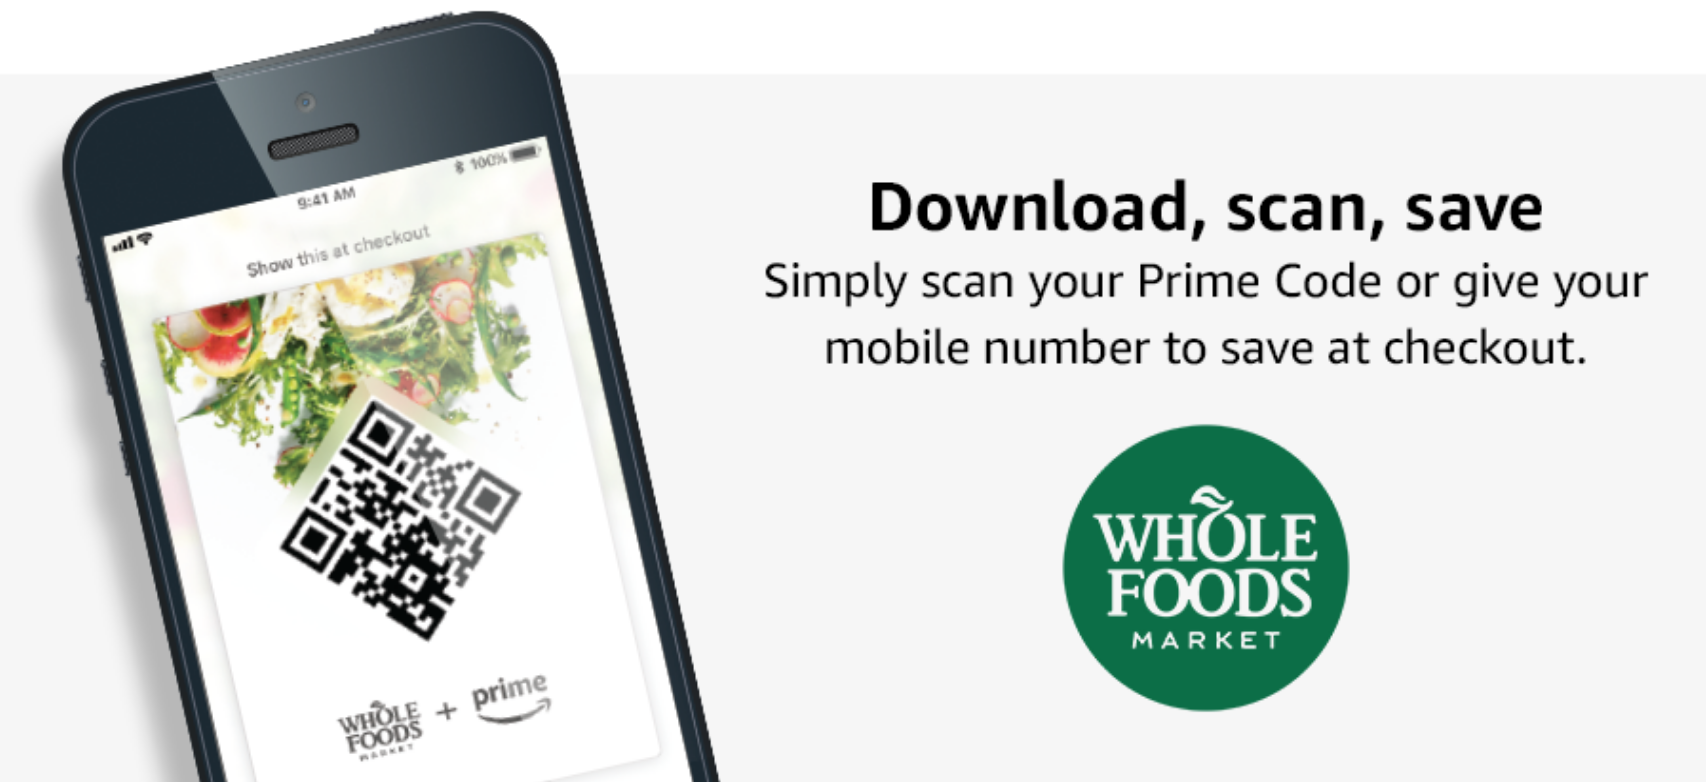 how-to-get-amazon-prime-whole-foods-discount